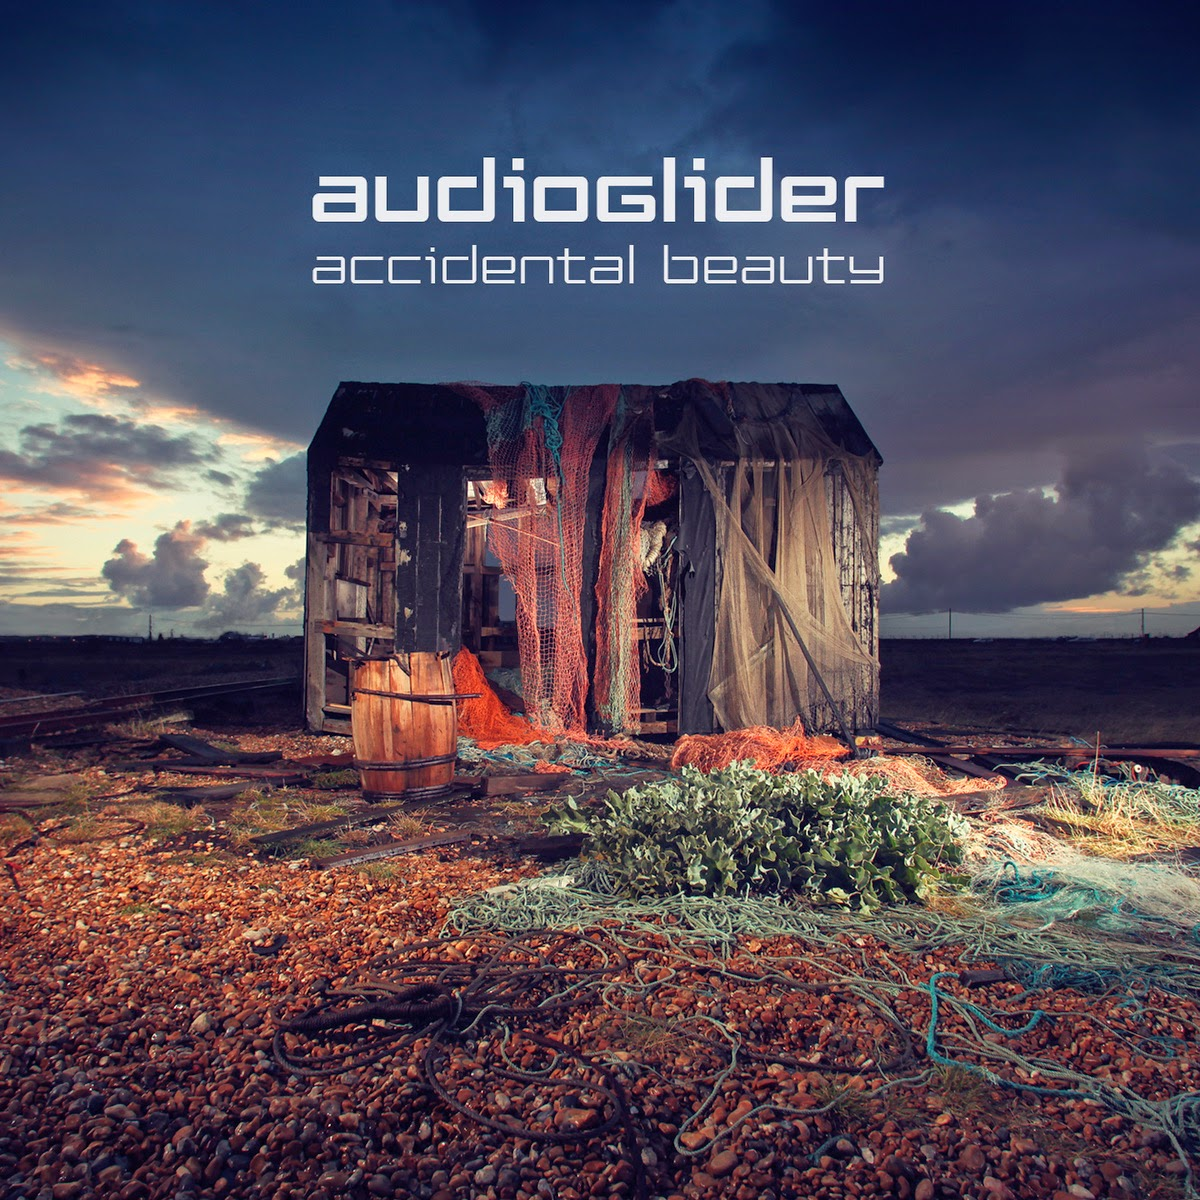 http://www.d4am.net/2014/04/audioglider-accidental-beauty.html